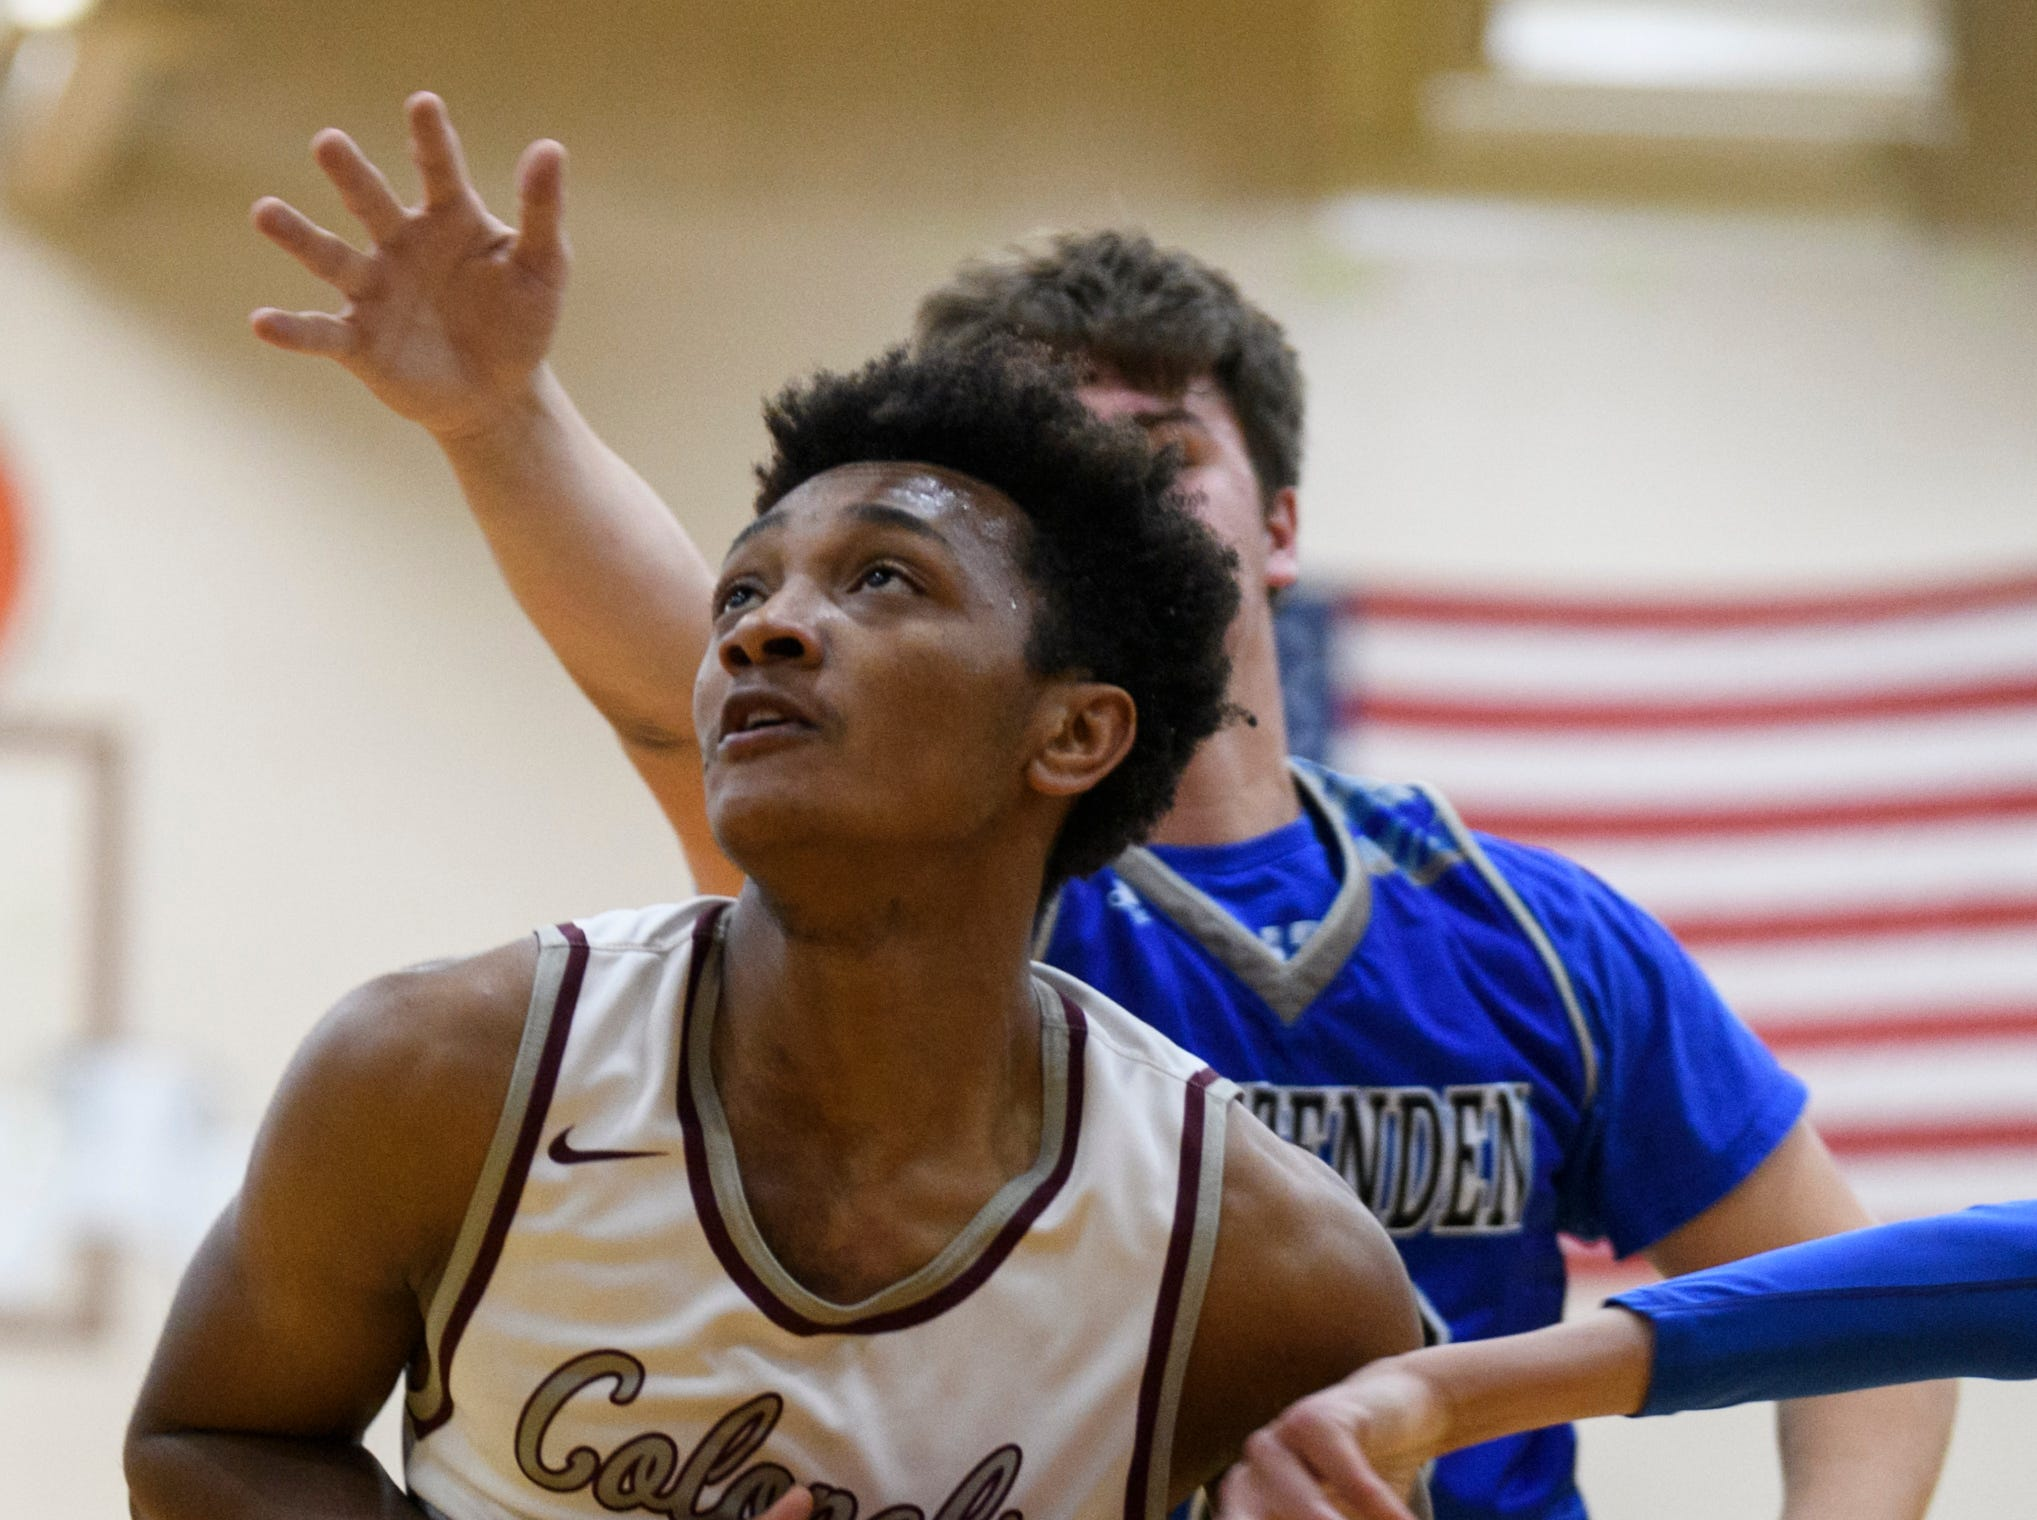 Henderson's Daymian Dixon (3) is guarded by Crittenden County's Gavin Dickerson (10) and Erik O'Leary (2) during the first quarter at Henderson County High School in Henderson, Ky., Tuesday, Dec. 18, 2018. The Colonels defeated the Rockets 88-52.